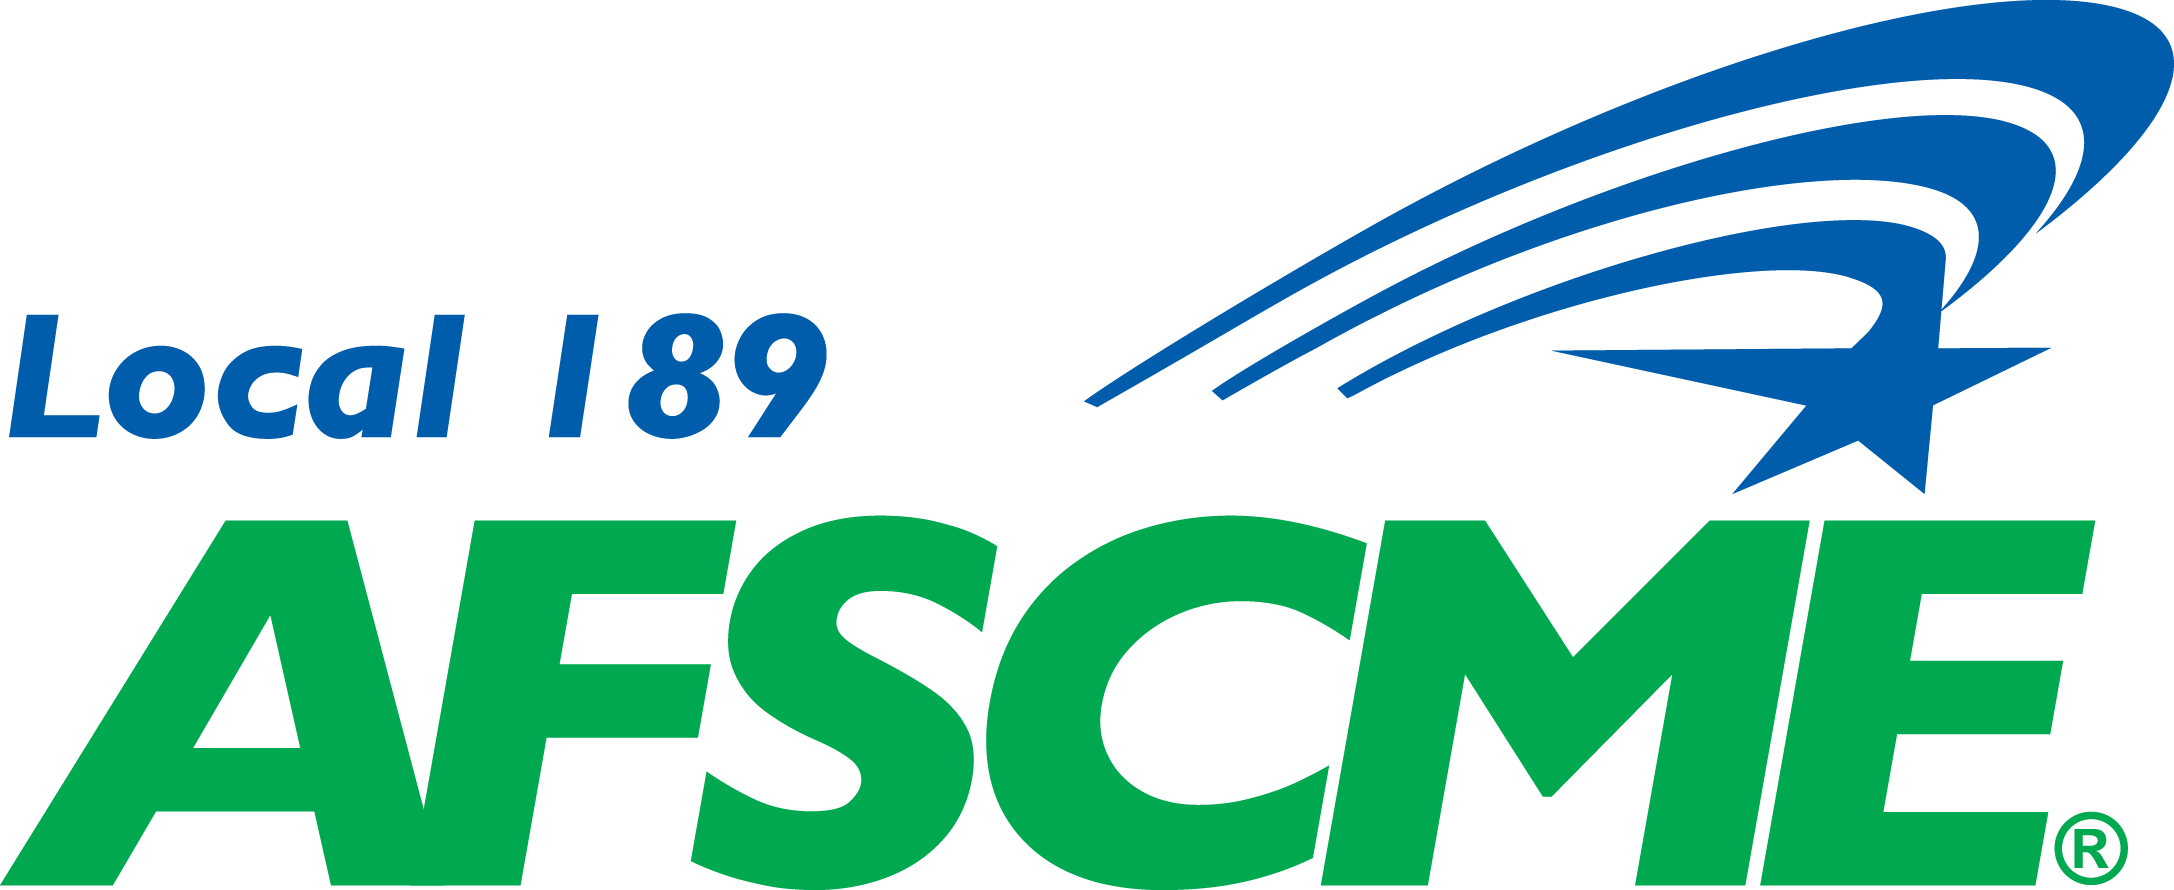 Afscme Local 189 Logo, green and blue text with a star